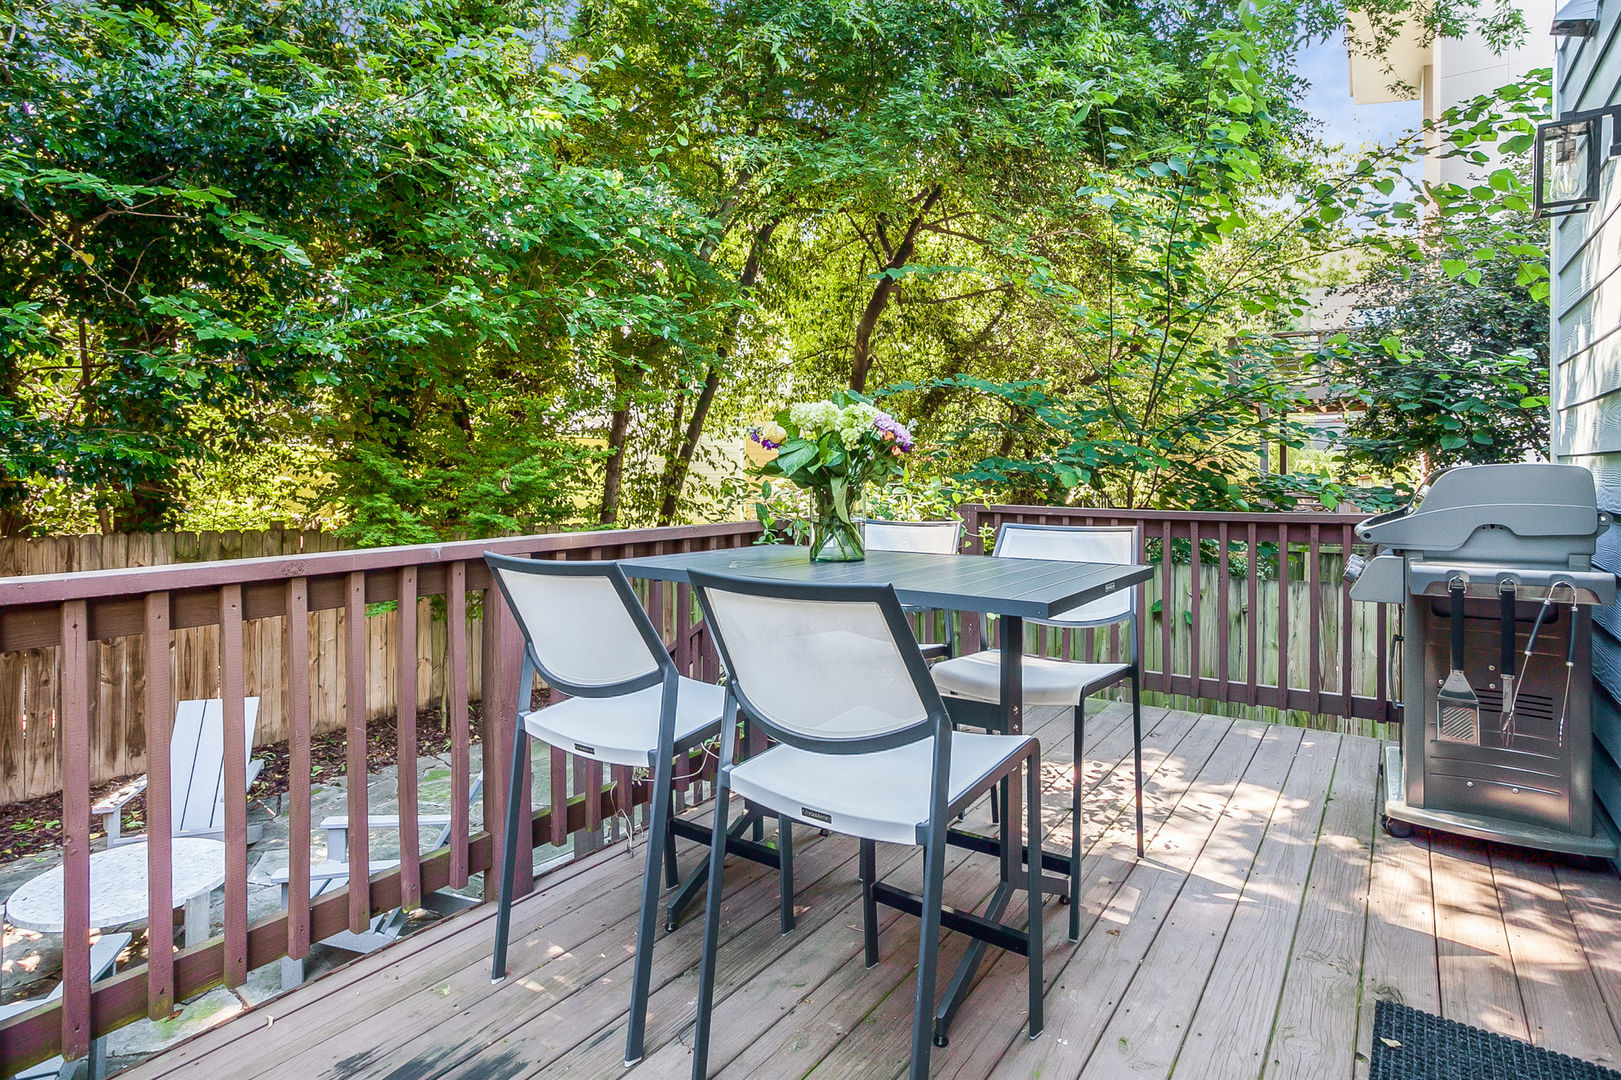 Outdoor Dining Table, Chairs, and BBQ Grill in the Backyard Deck.